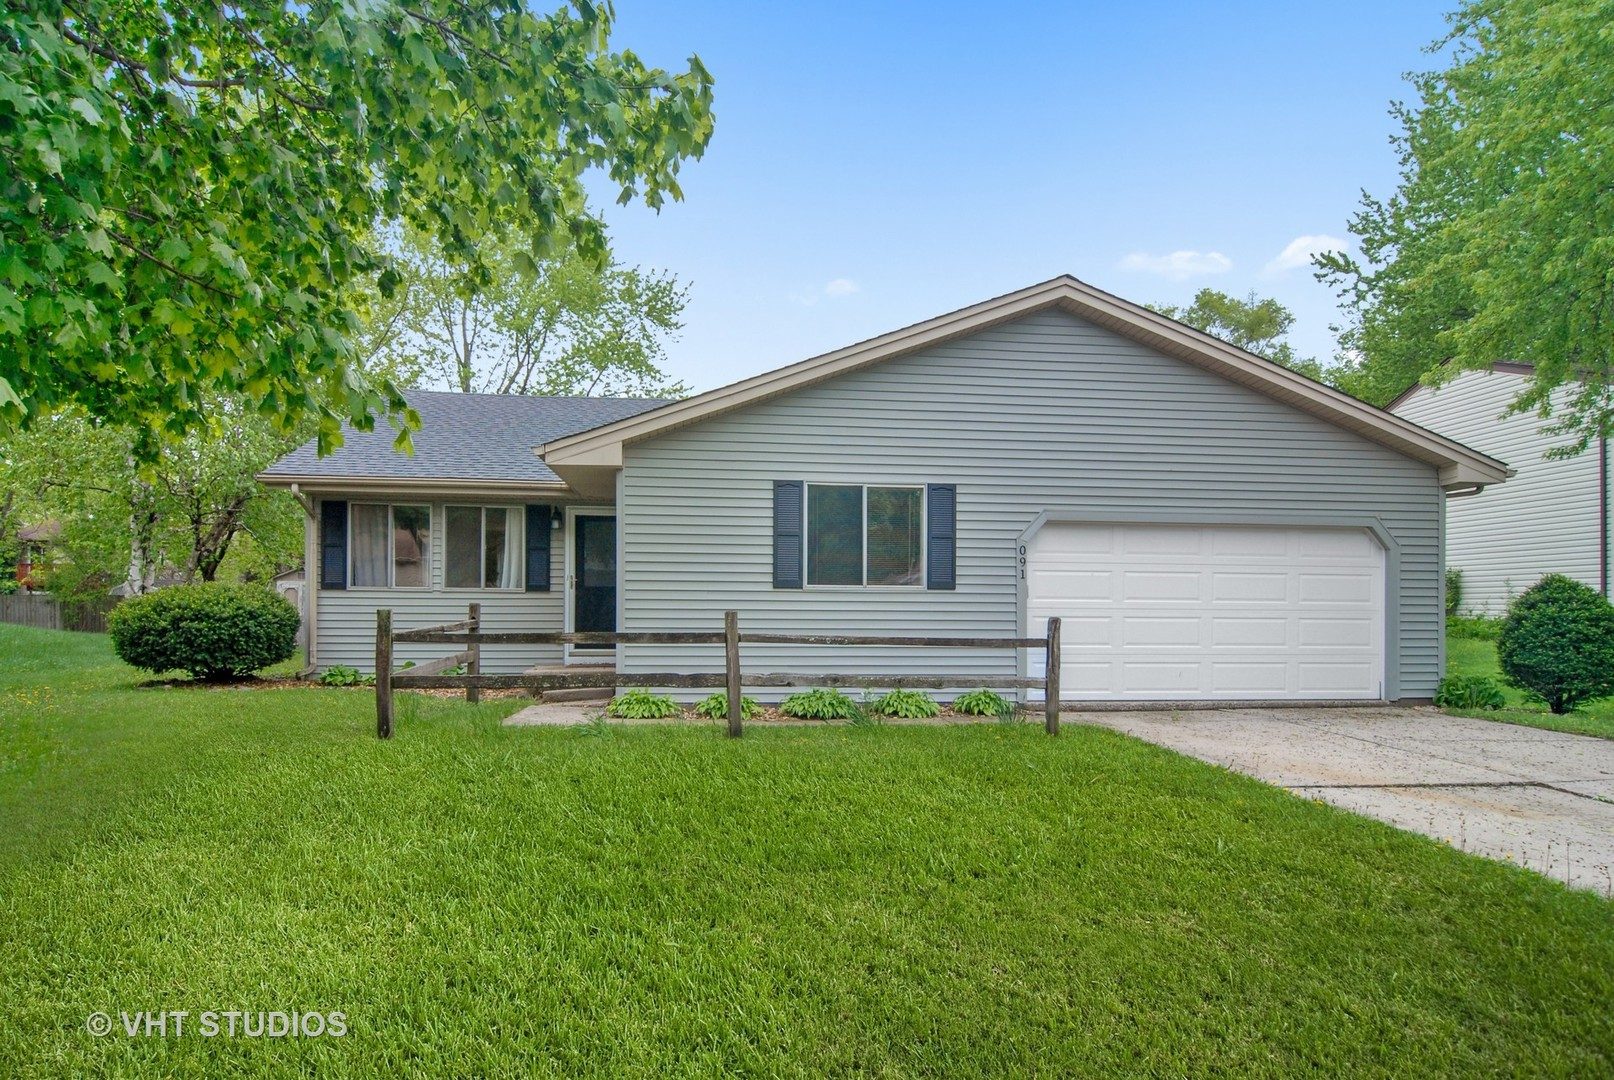 30w091 Avondale Court, Warrenville, Illinois 60555